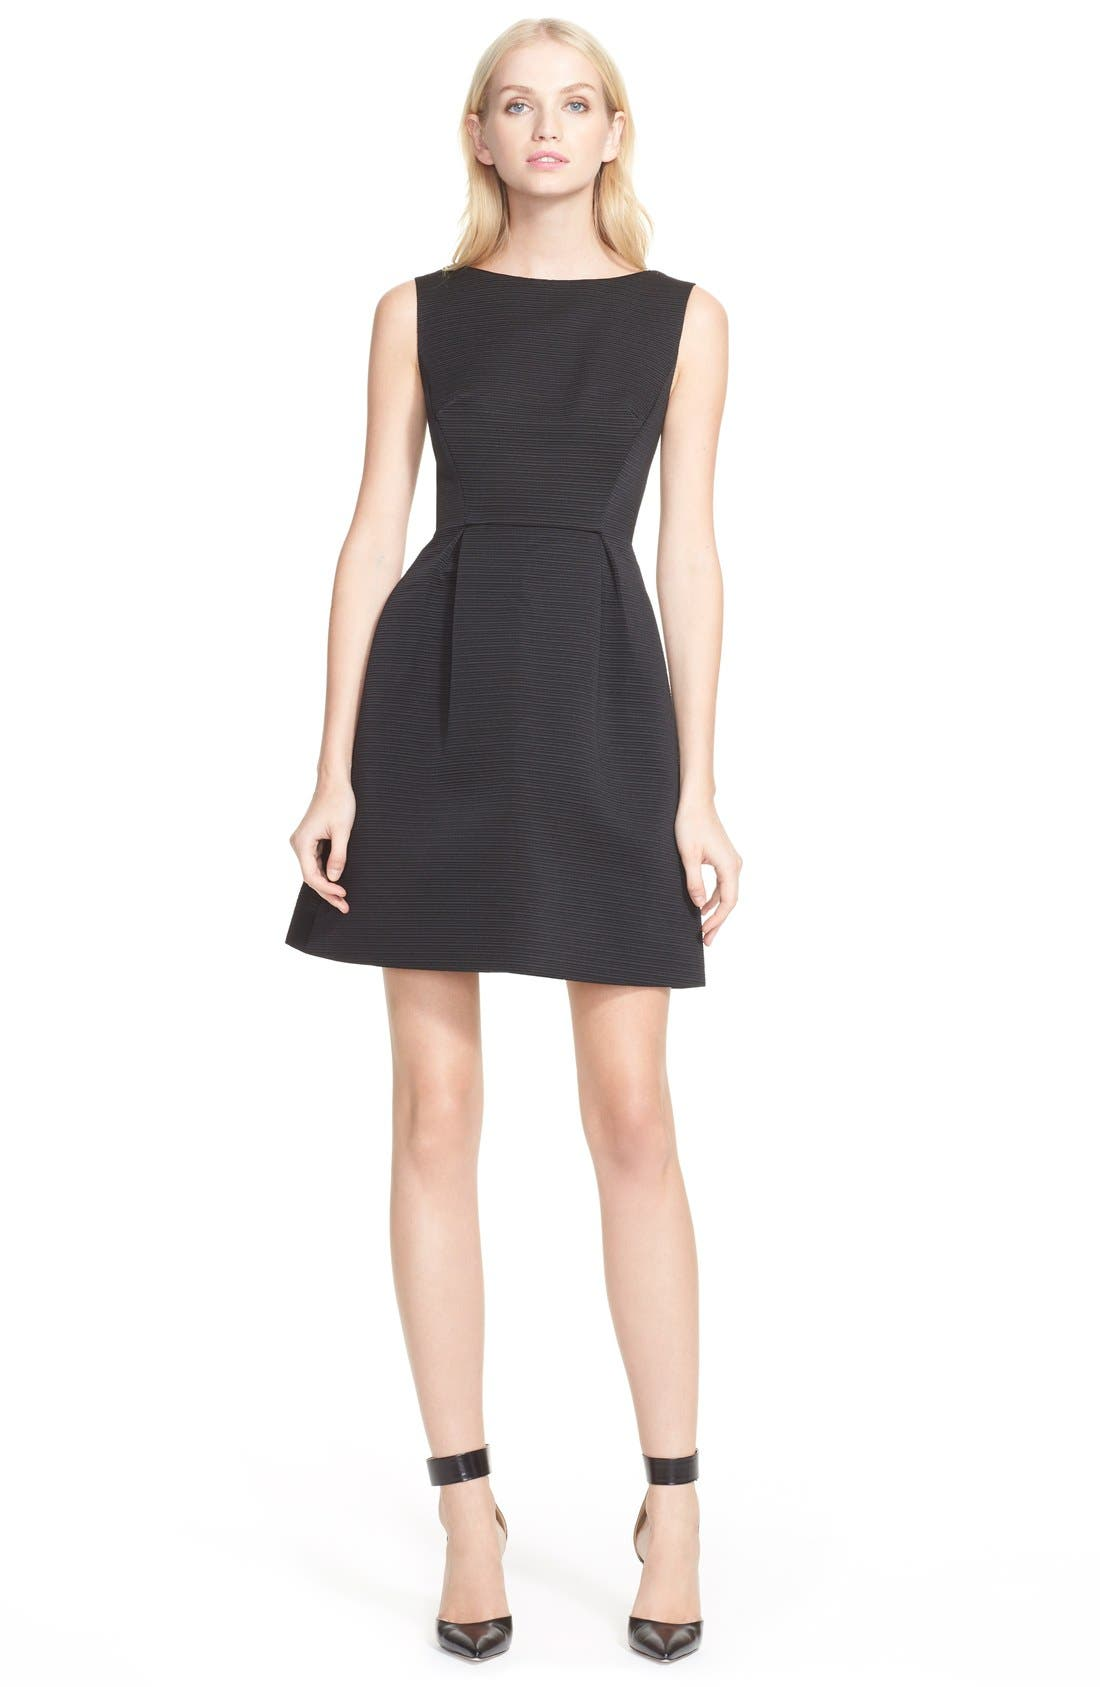 Alternate Image 1 Selected - kate spade textured fit & flare bow detail dress